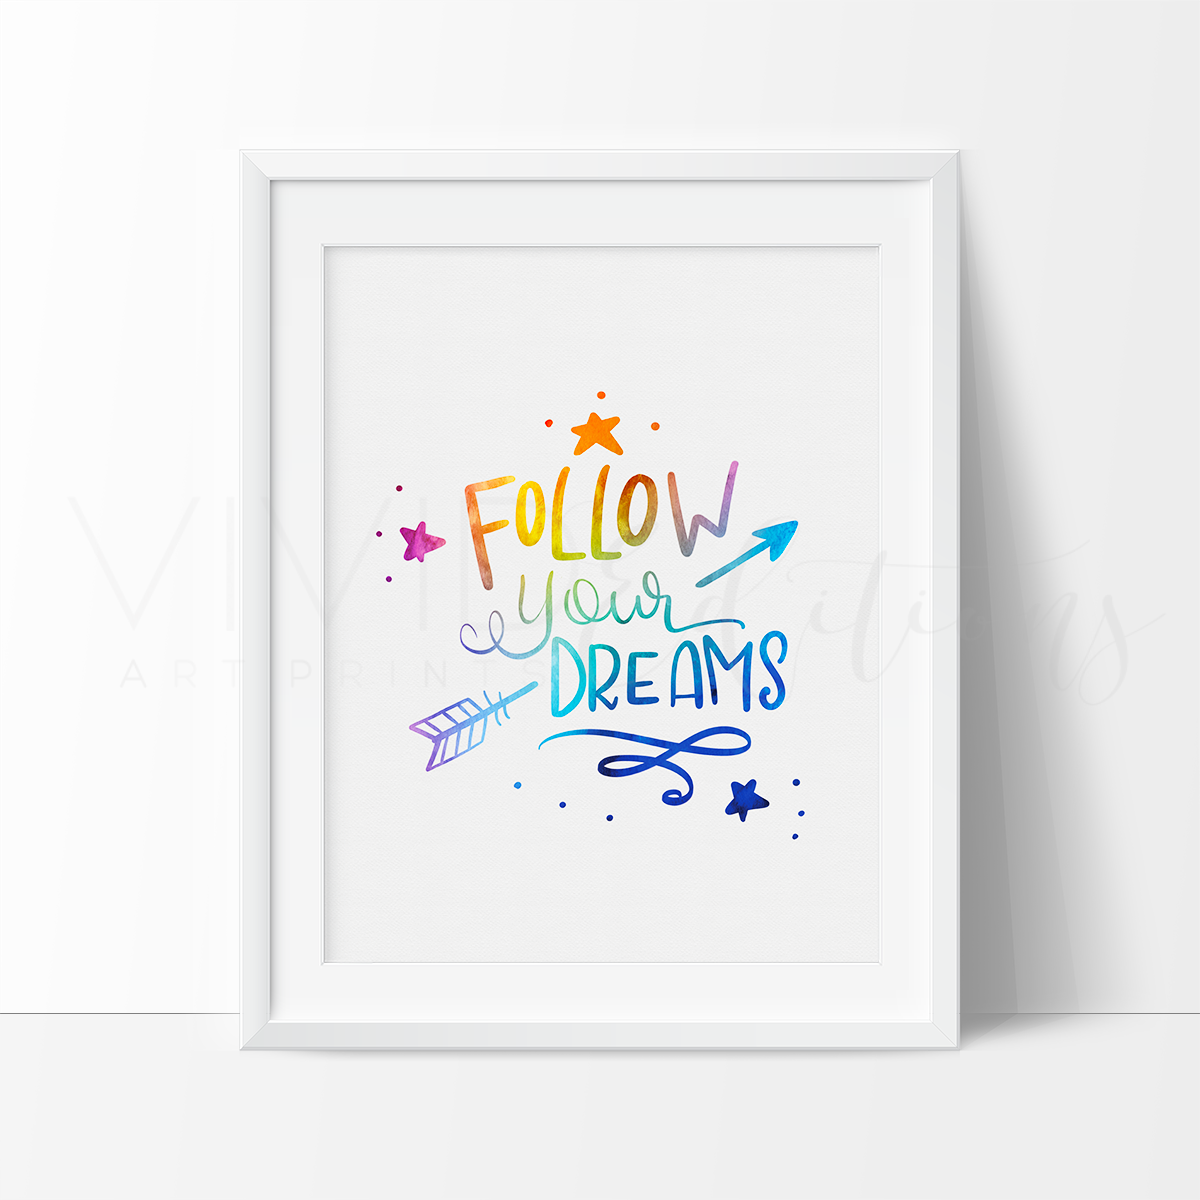 Follow Your Dreams, Hand-lettered / Hand-drawn Motivational Watercolor Art Print Art Print - VIVIDEDITIONS